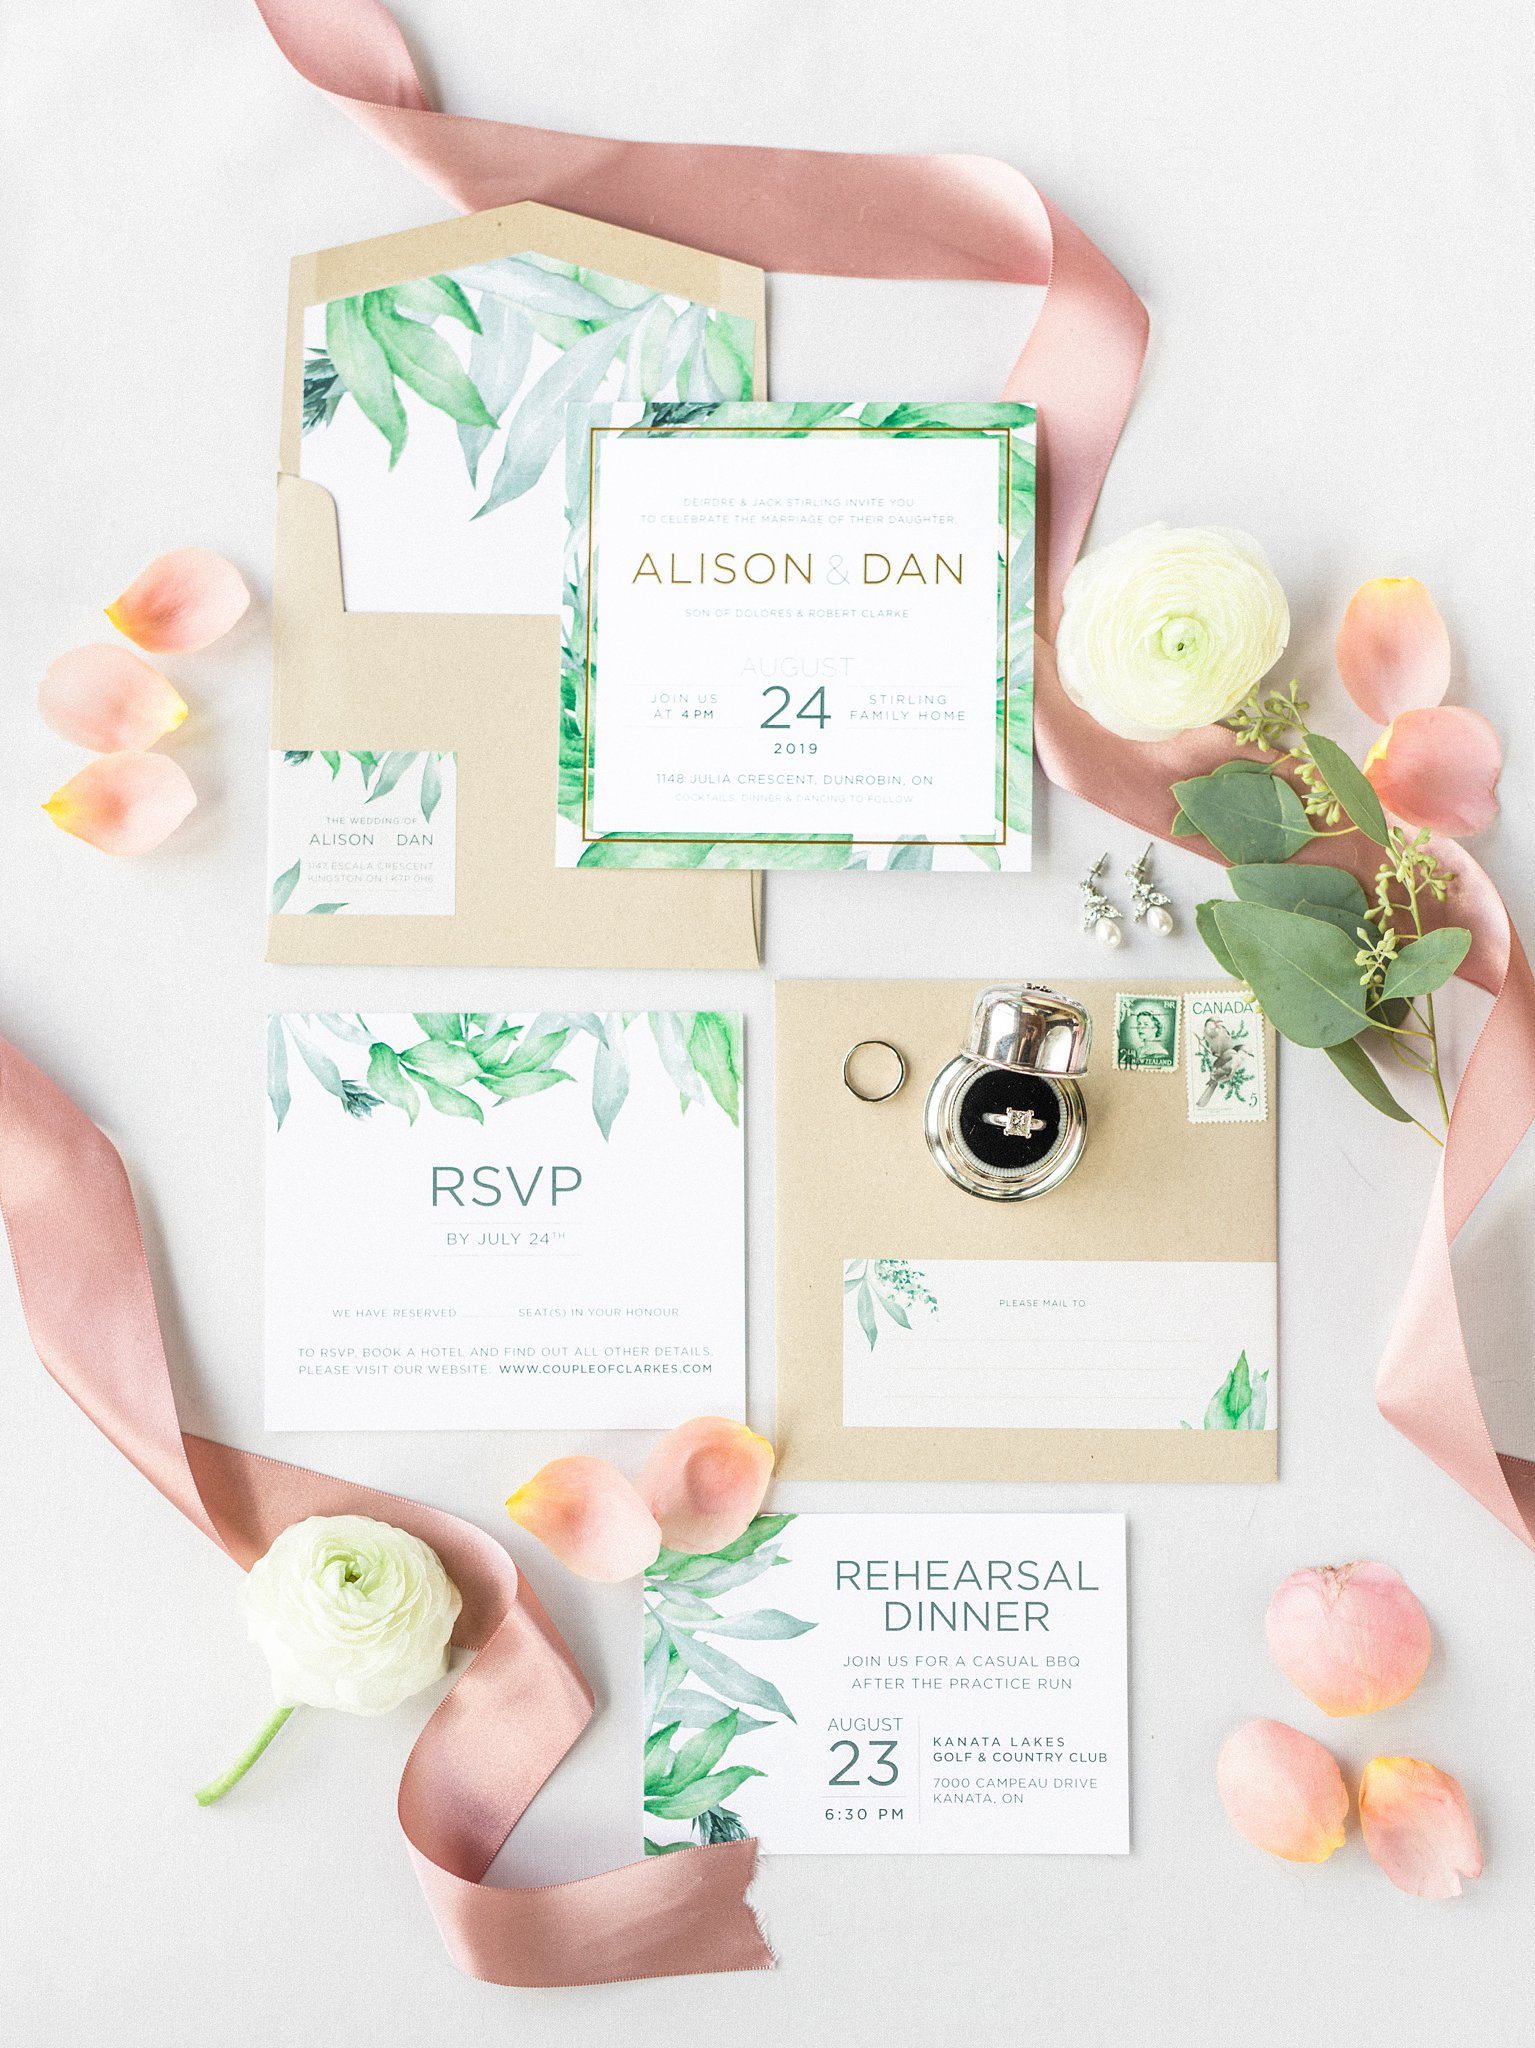 Invitation flat lay, ribbon, Wishtree, Private Estate Wedding Photos, Amy Pinder Photography